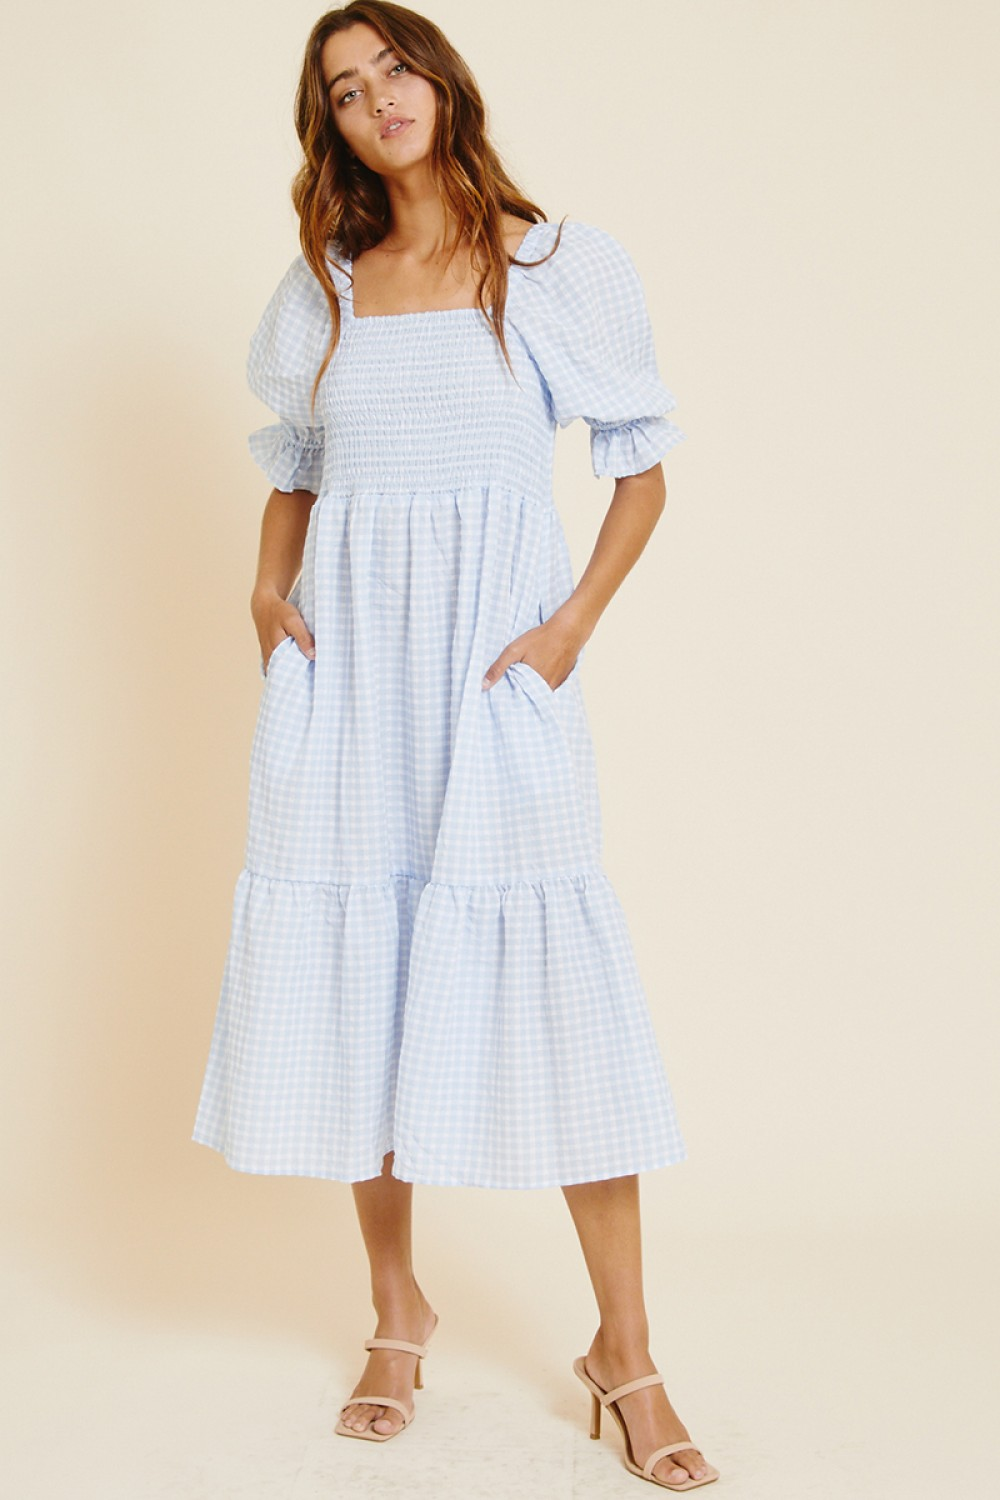 DI5963<br/>Quarter Puff Sleeve Tier Dress with Square Neck